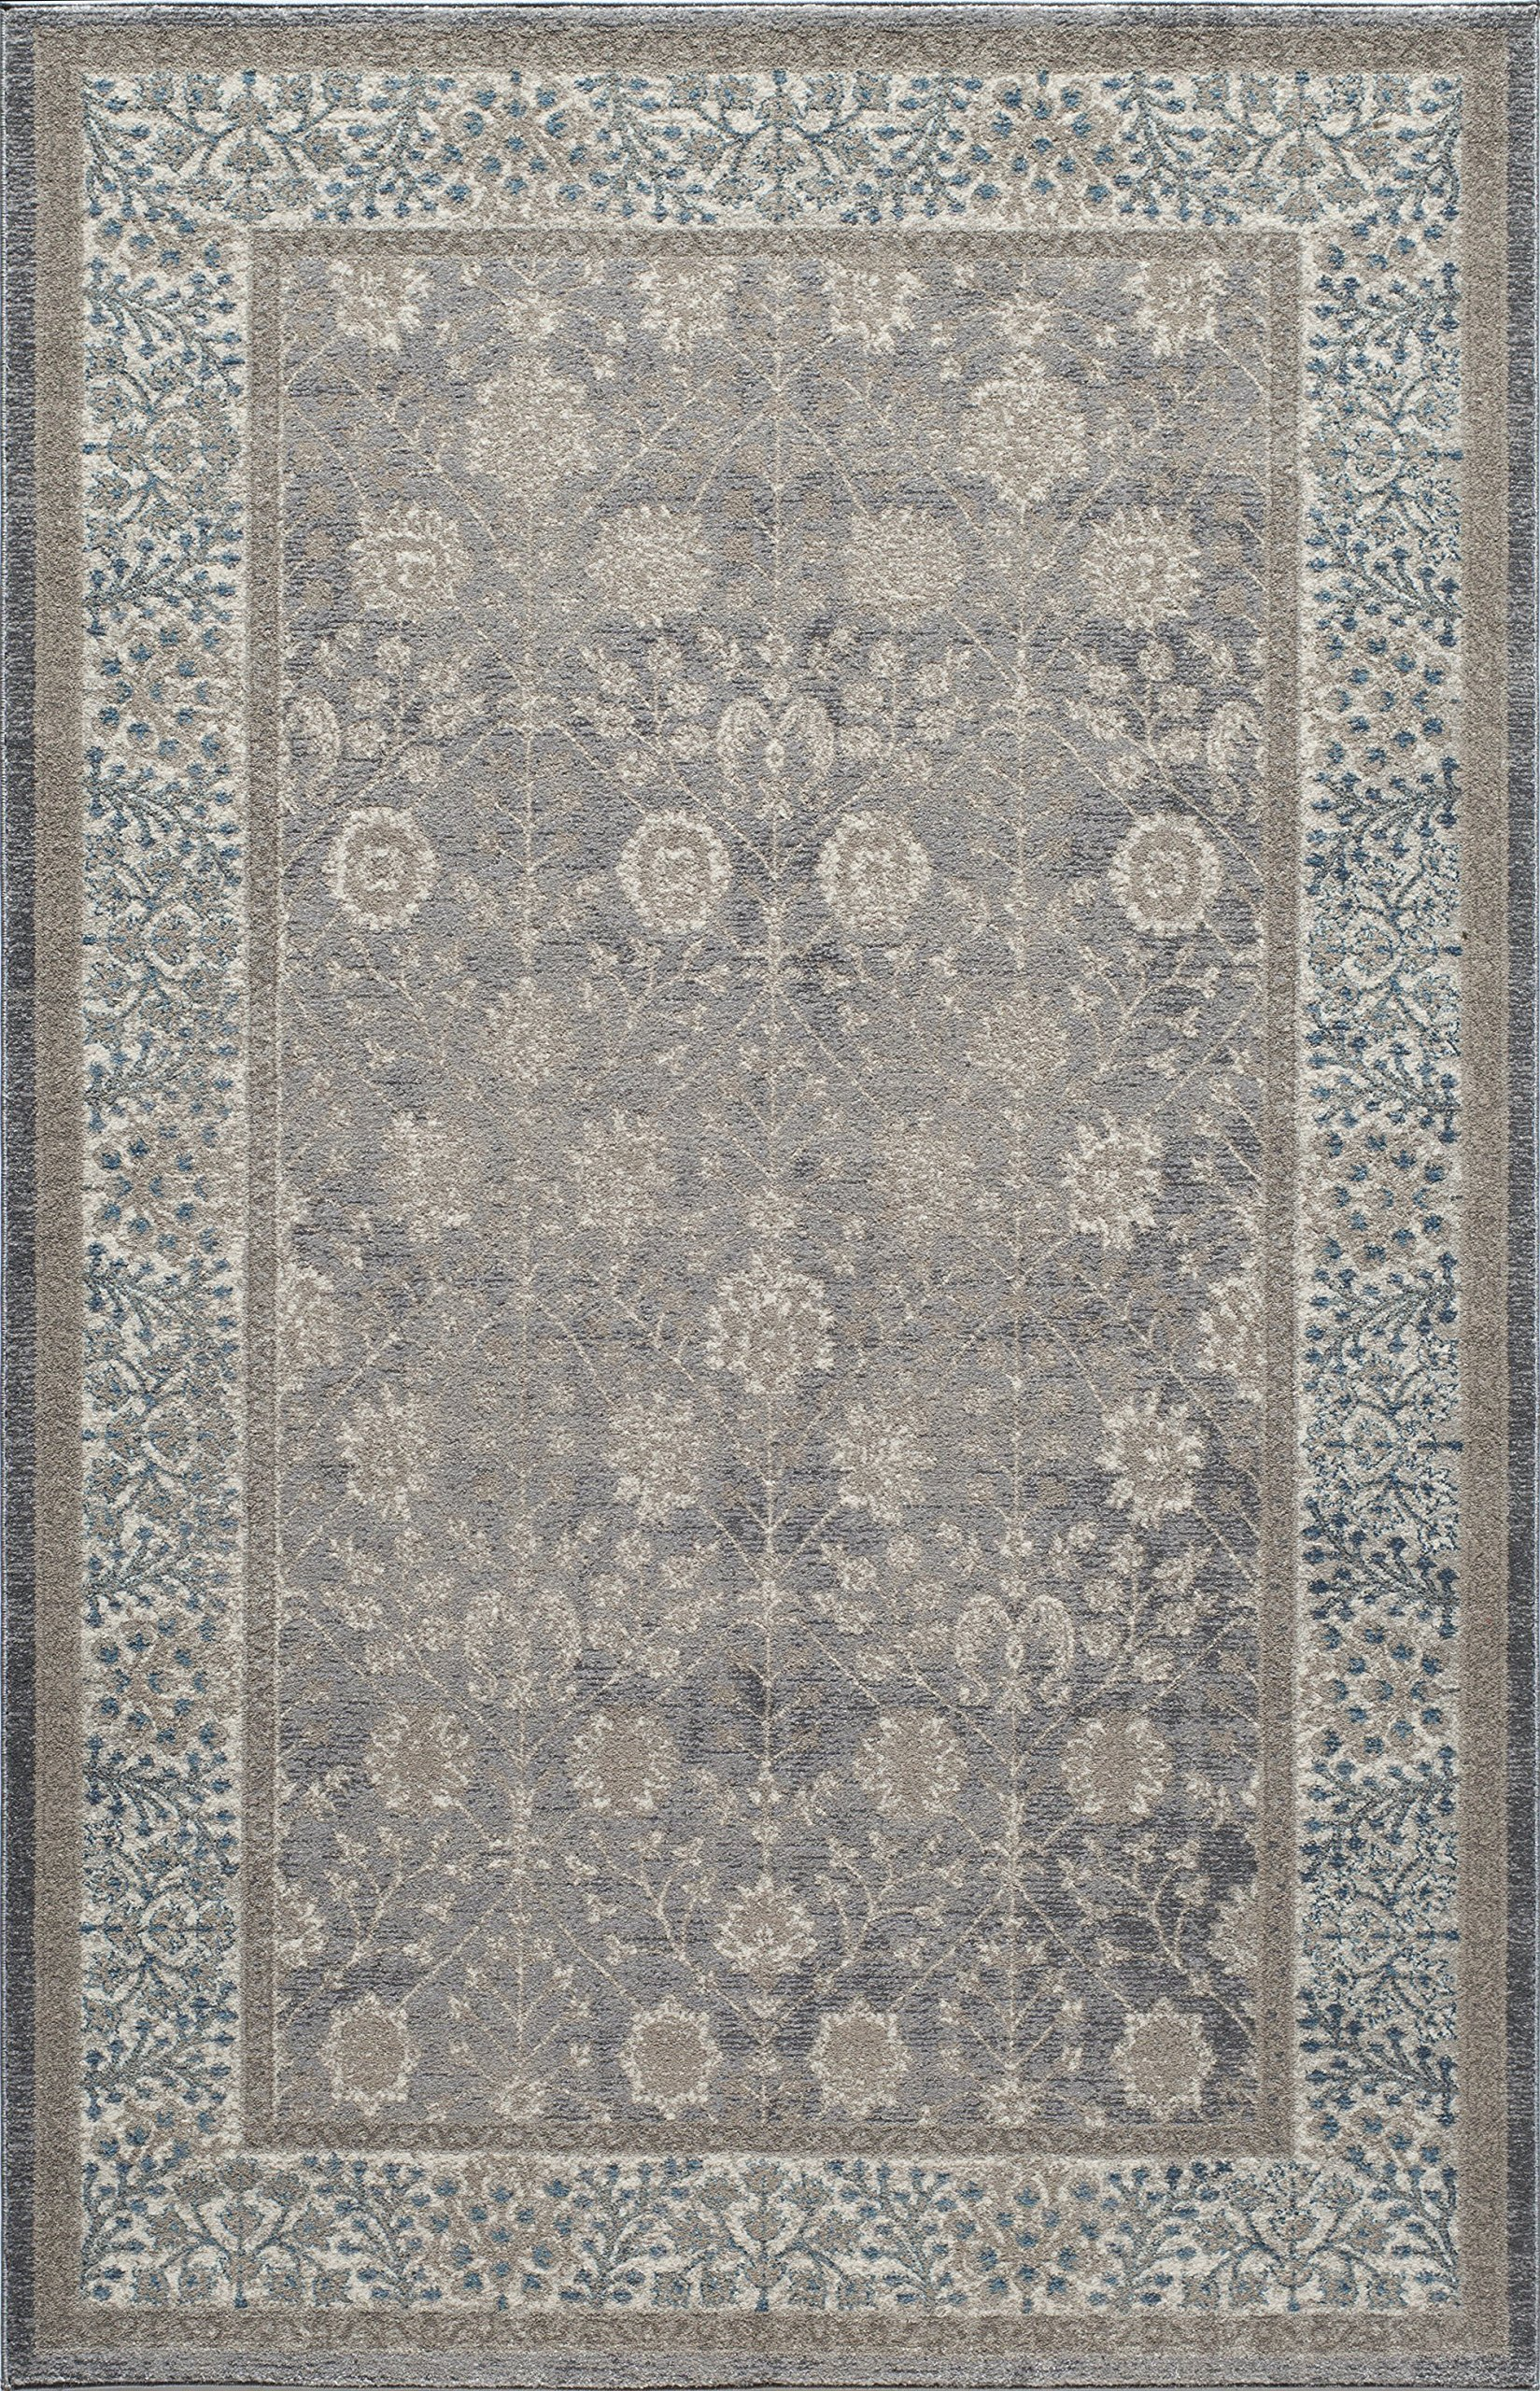 Momeni Rugs KERMAKE-01SVL93C6 Kerman Collection, Antique Persian Inspired Traditional Area Rug, 9'3'' x 12'6'', Silver